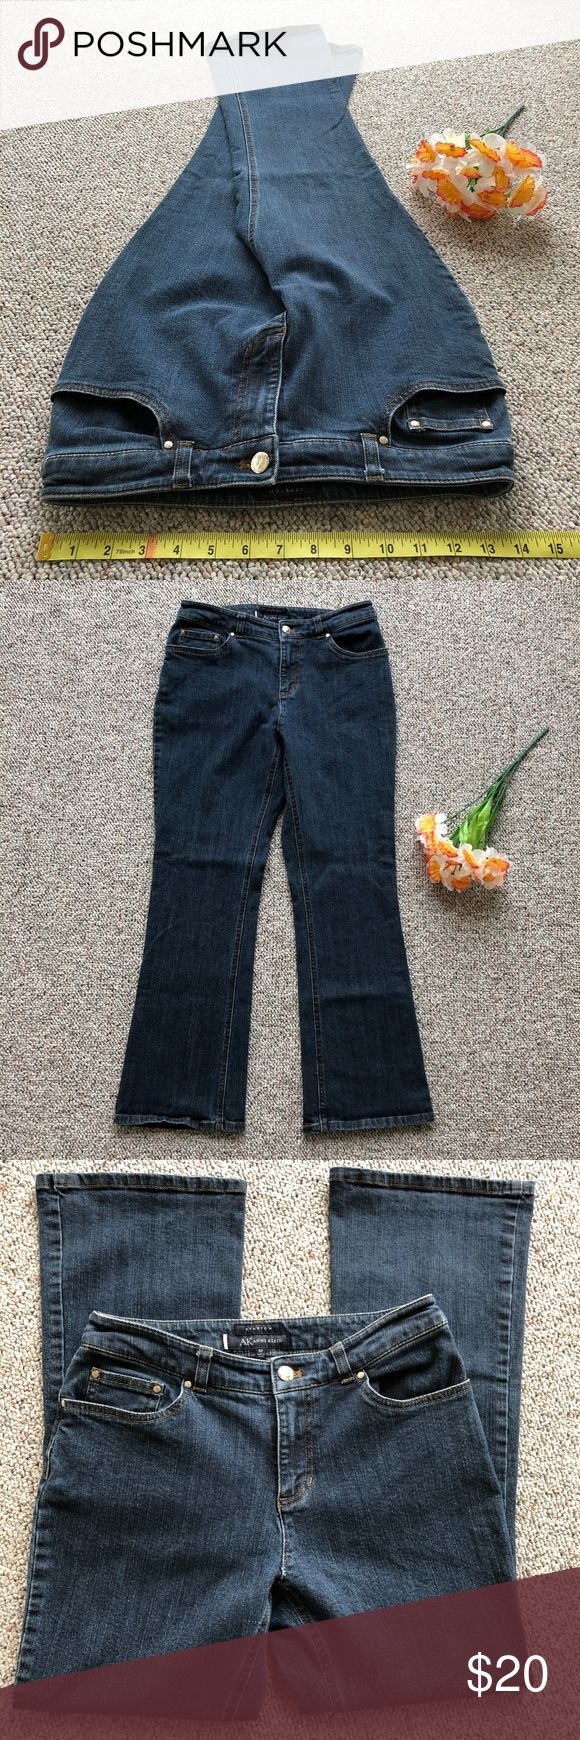 Anne klein petite bootcut jeans nice pussies